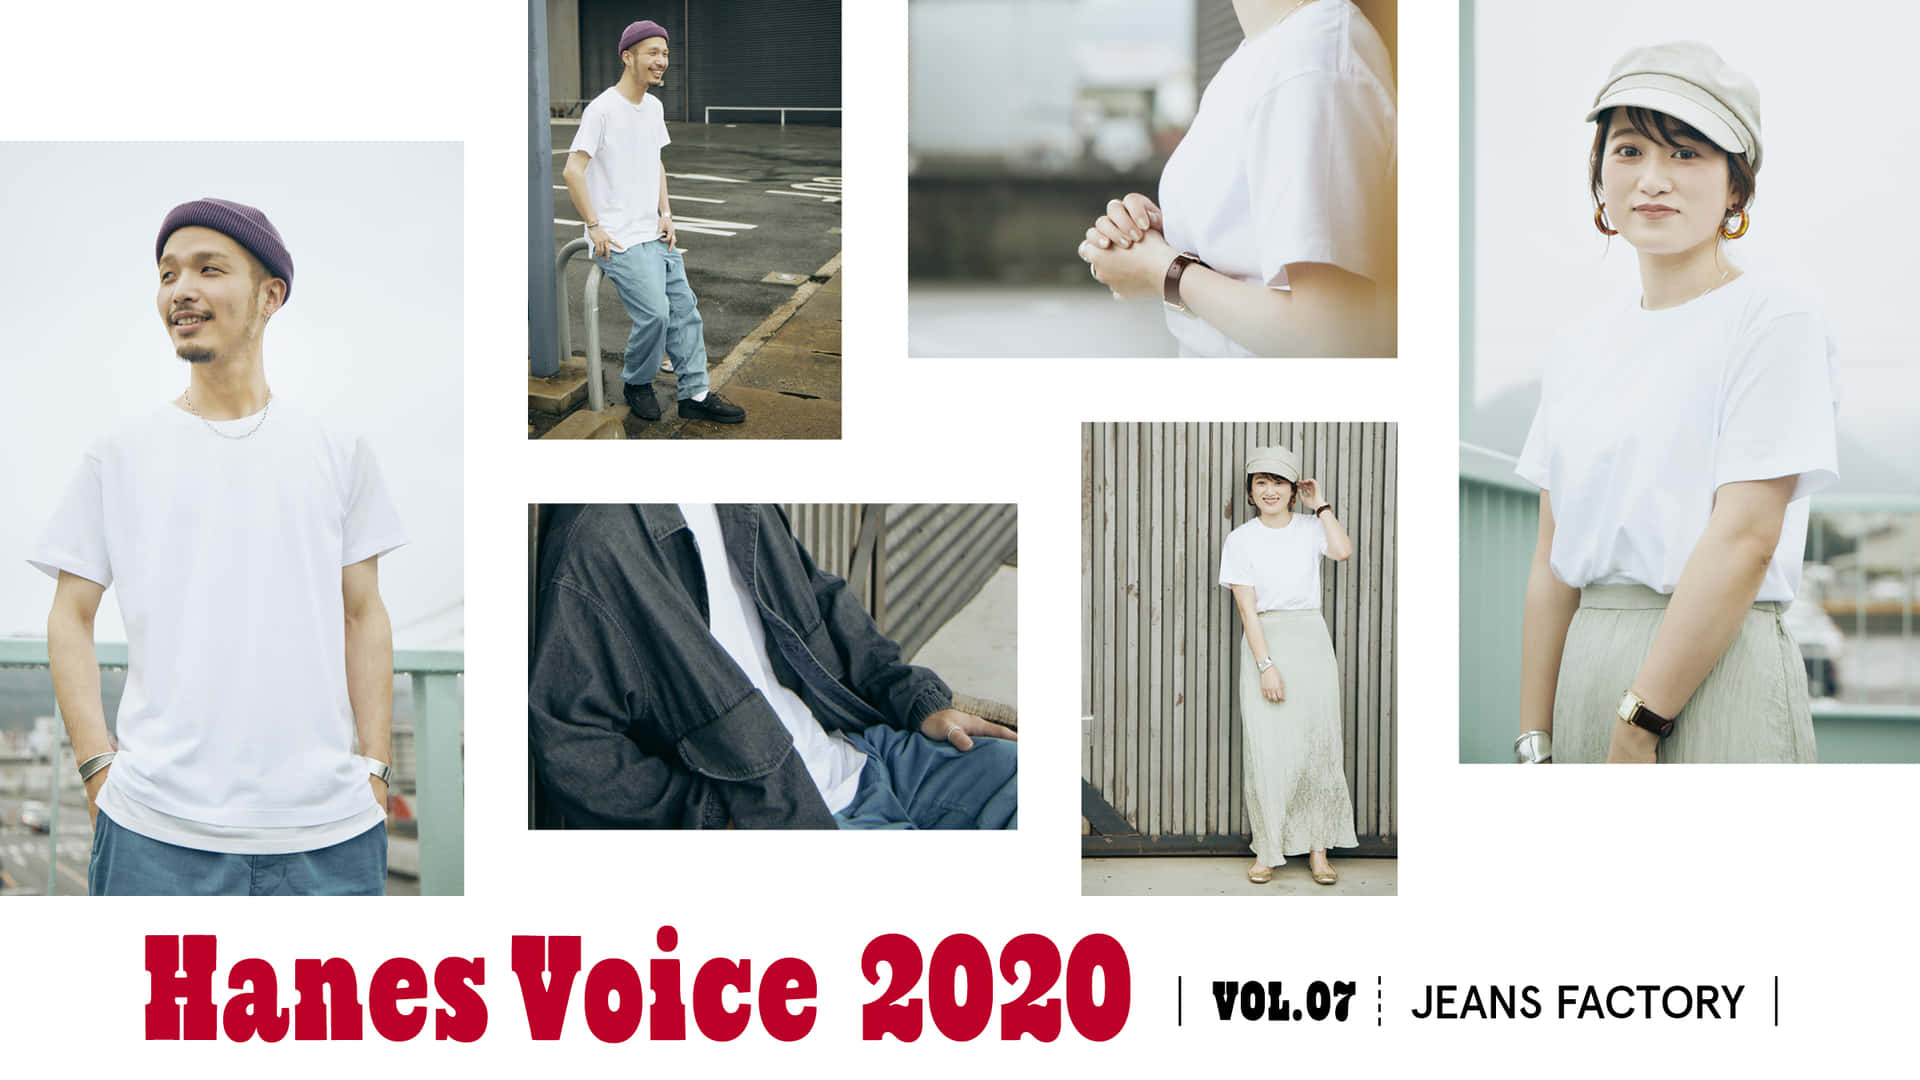 Hanes Voice 2020 vol.7「JEANS FACTORY」